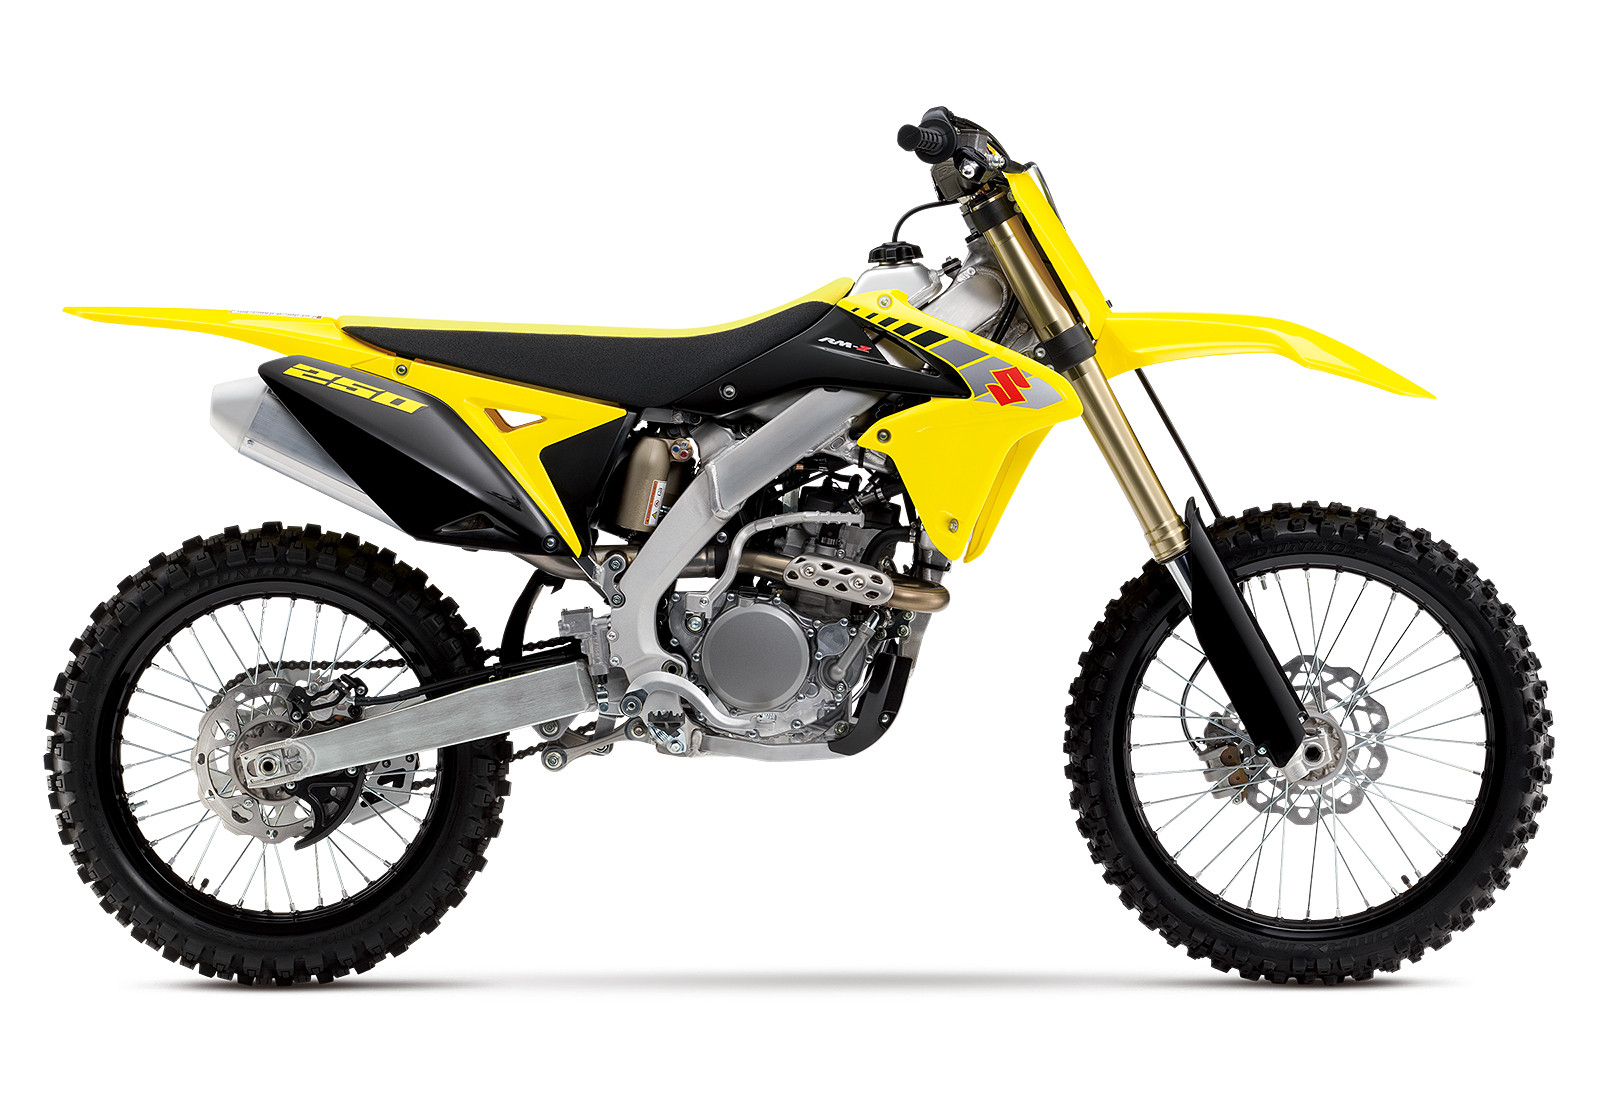 2017 Suzuki RM-Z250 - First Look: 2017 Suzuki RM, RM-Z, and RMX Models - Motocross Pictures - Vital MX